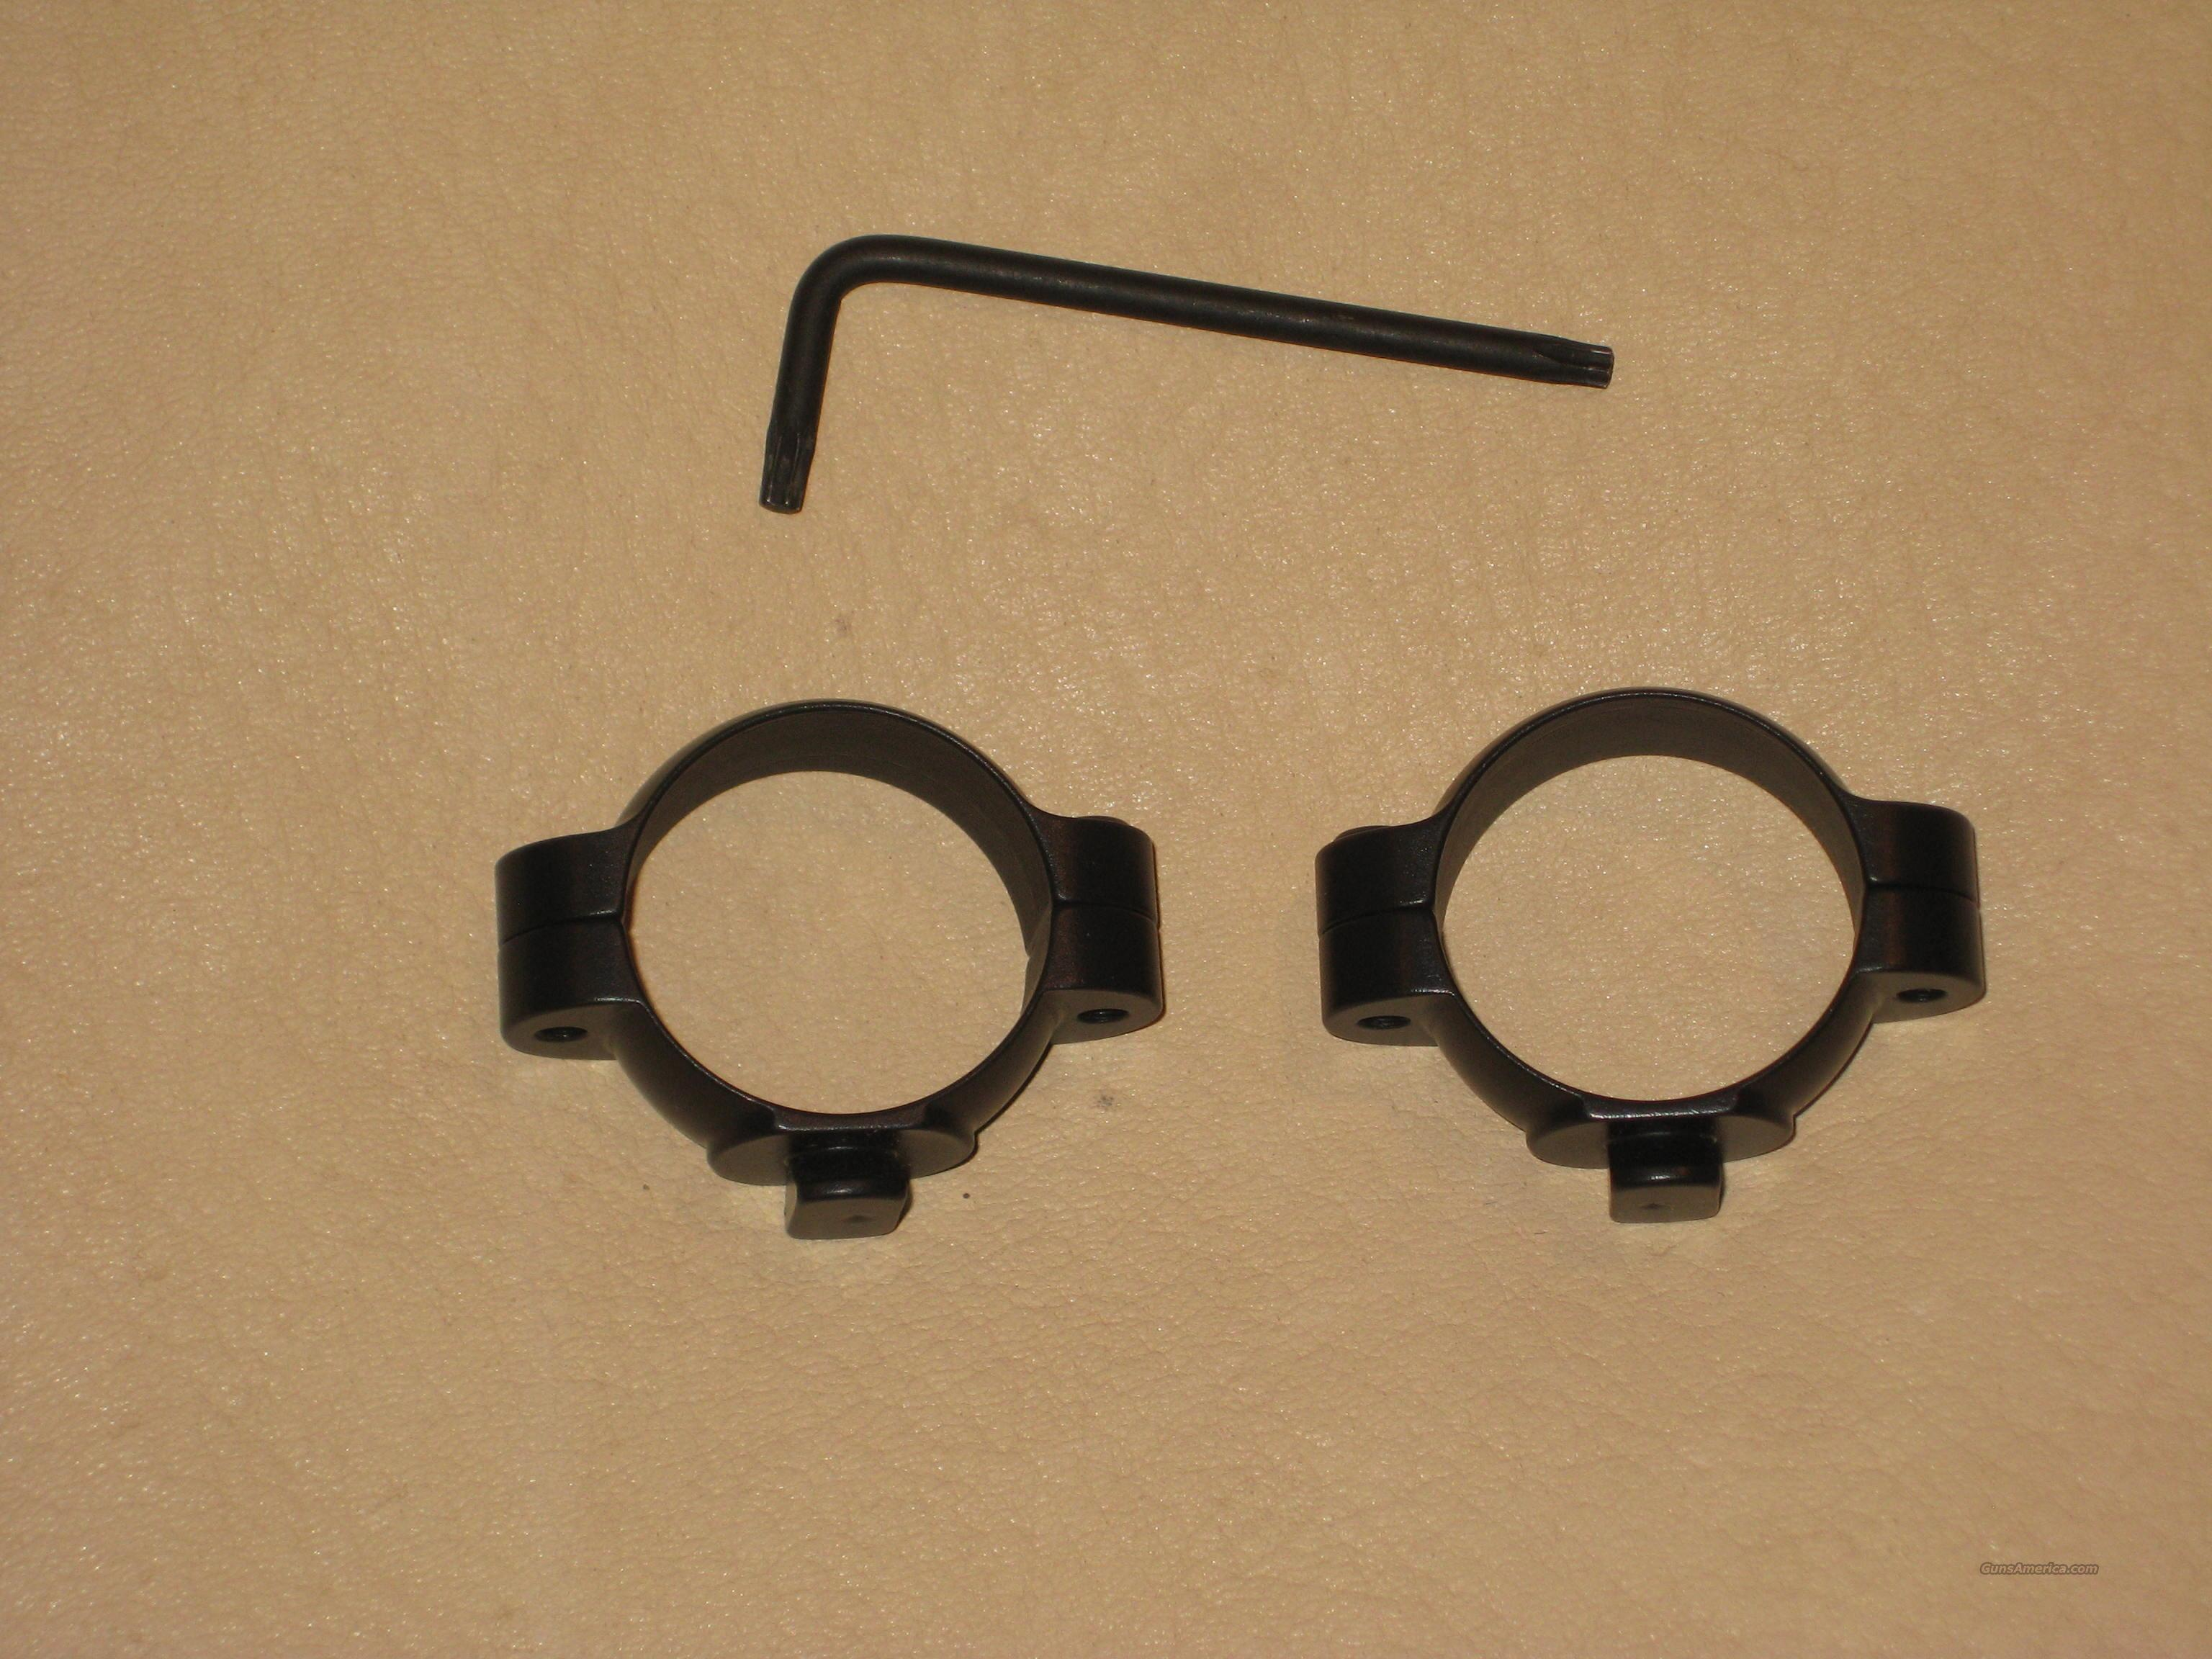 Leupold Dual Dovetail Rings - 30mm Low  Non-Guns > Scopes/Mounts/Rings & Optics > Mounts > Other